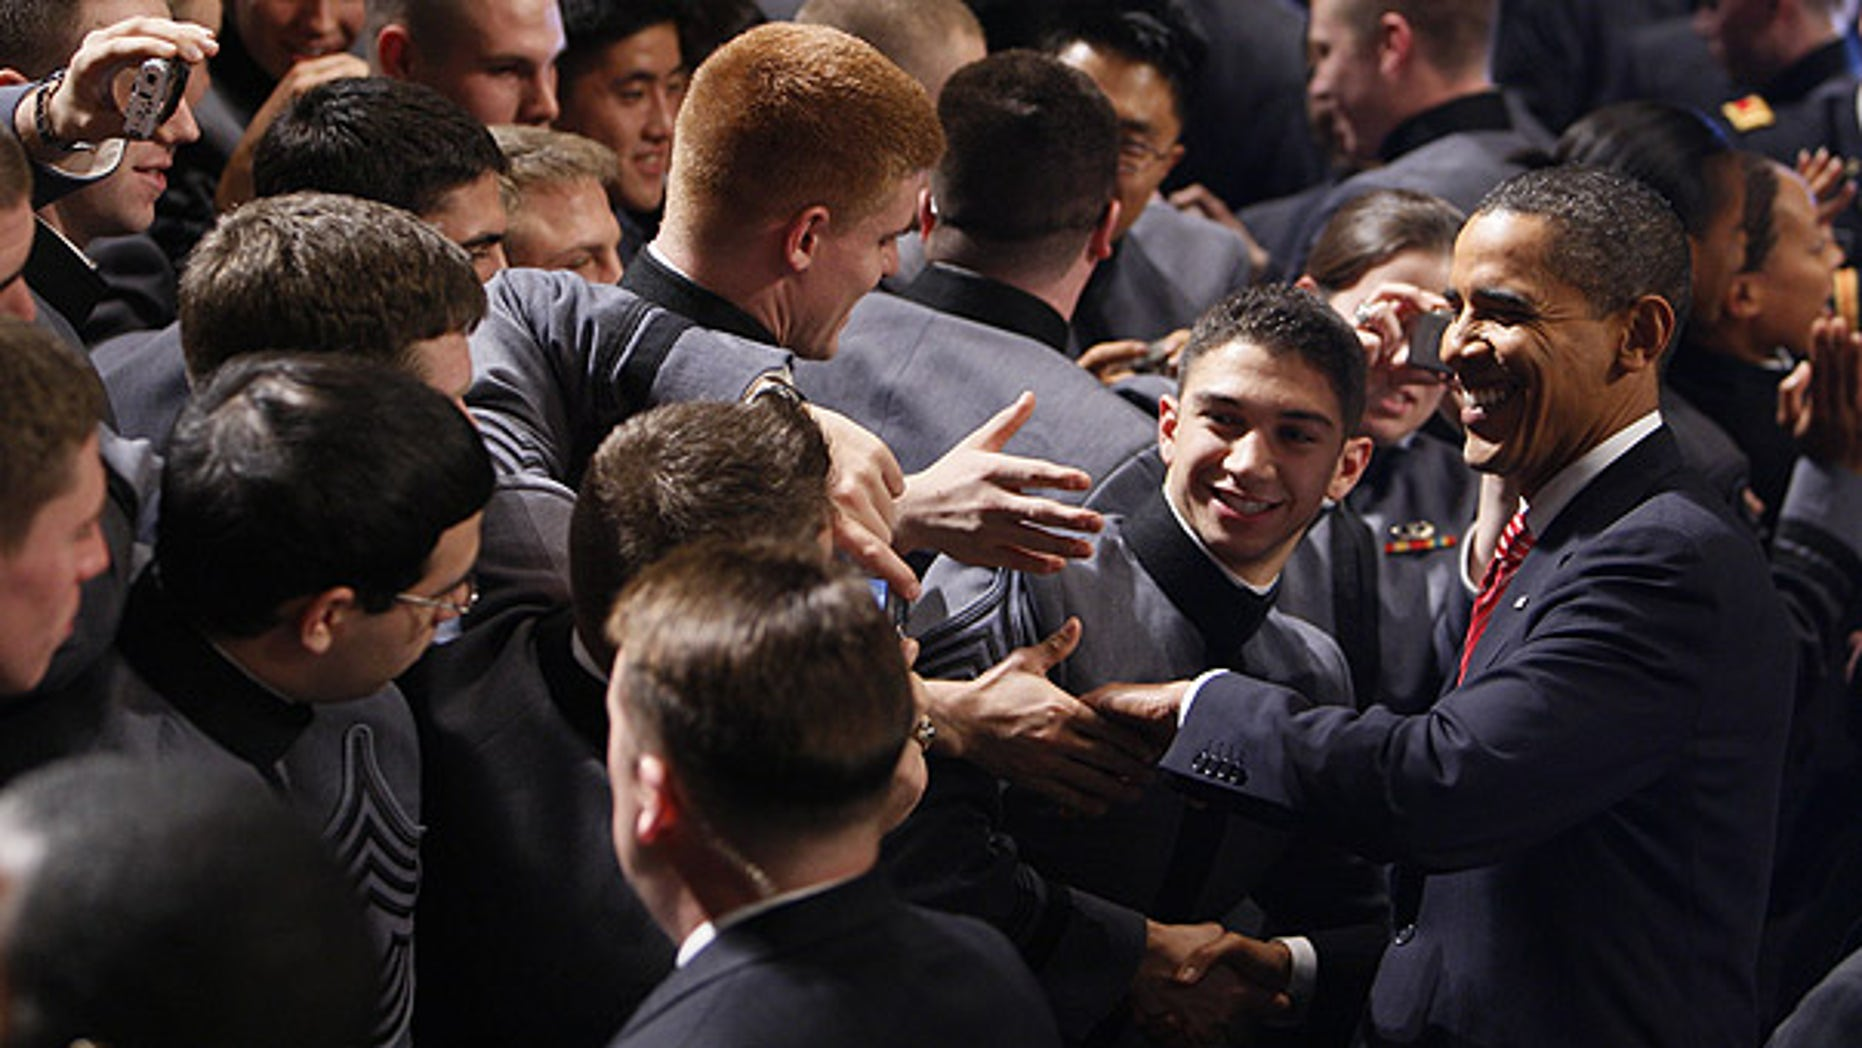 Dec. 1: President Barack Obama greets cadets after speaking about the war in Afghanistan at the U.S. Military Academy at West Point, N.Y. (AP)